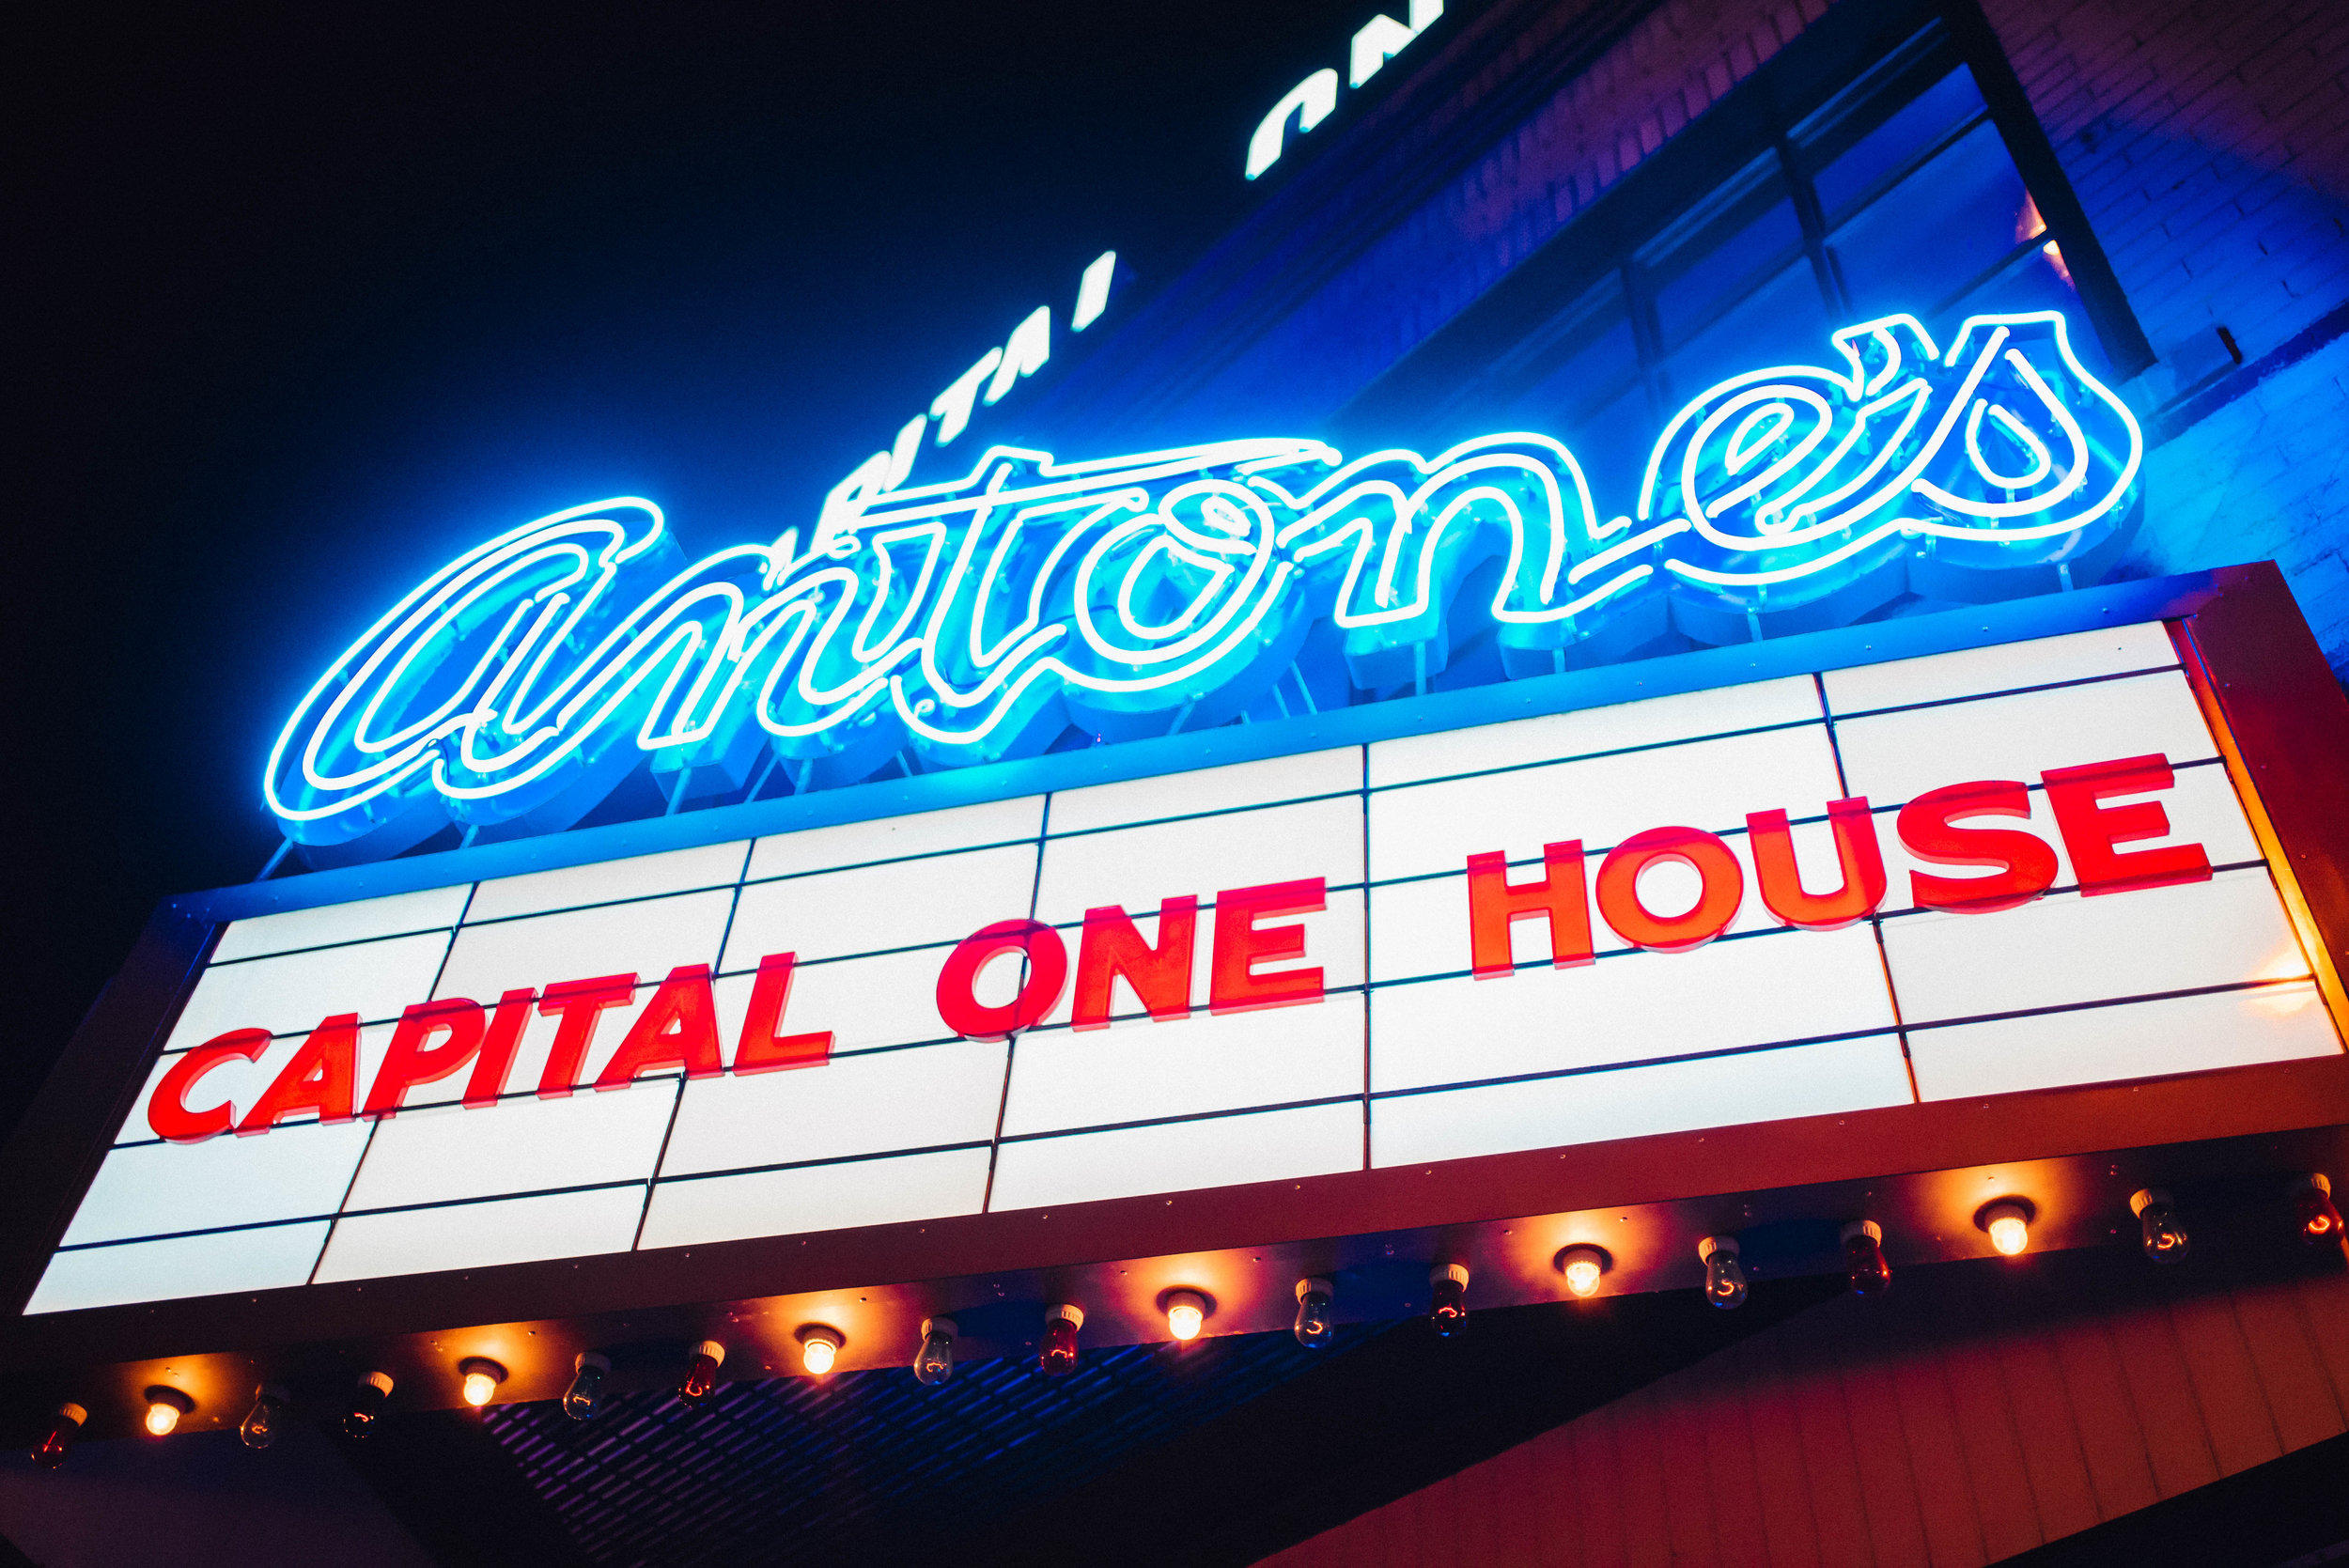 Capital One House at SXSW 2018 | Jordan Hefler